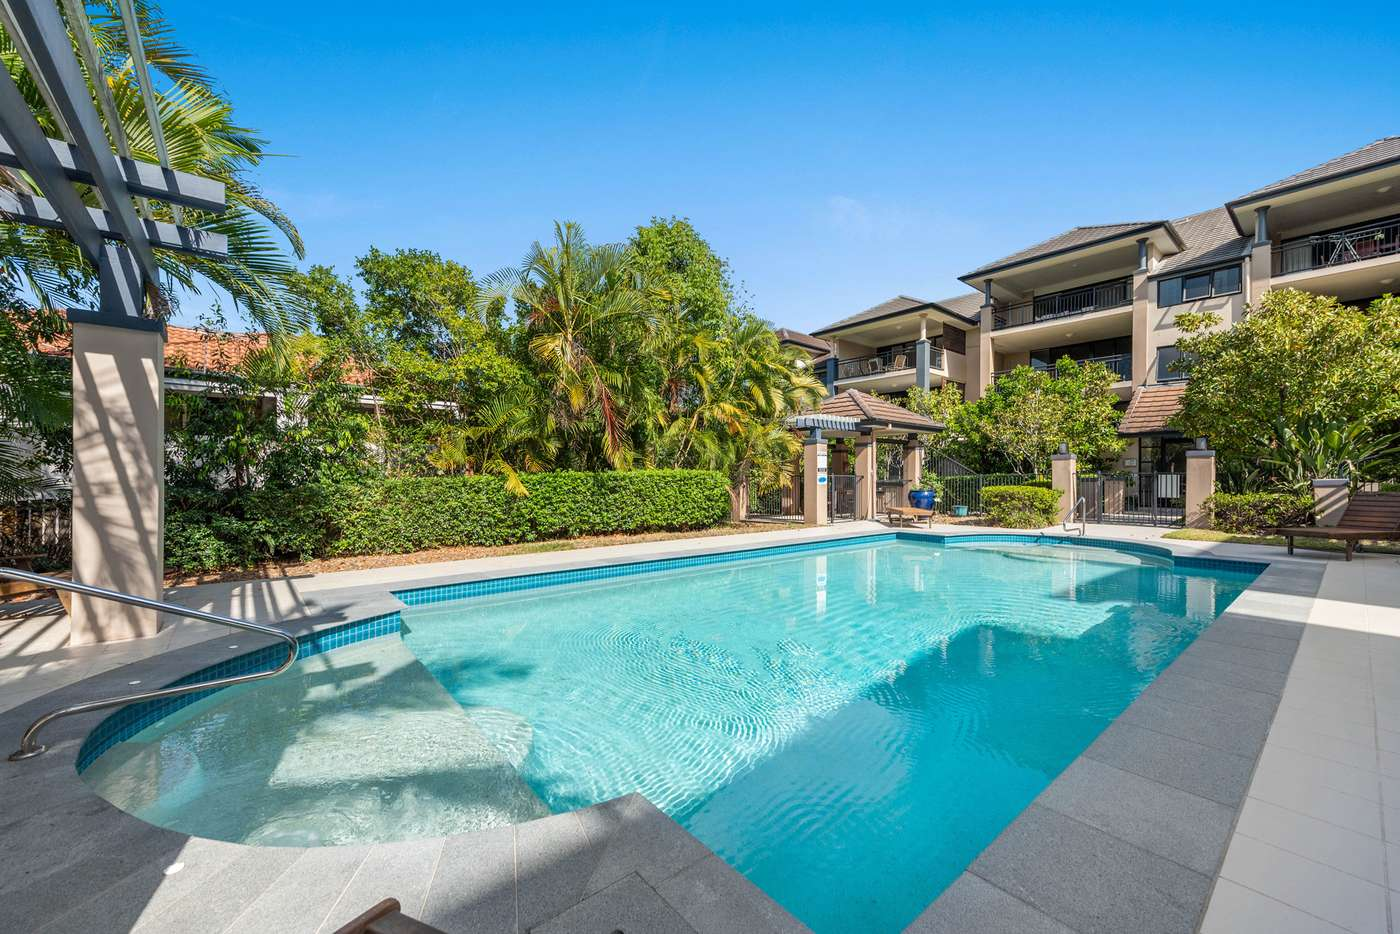 Main view of Homely apartment listing, 5/42-48 Durham Street, St Lucia QLD 4067